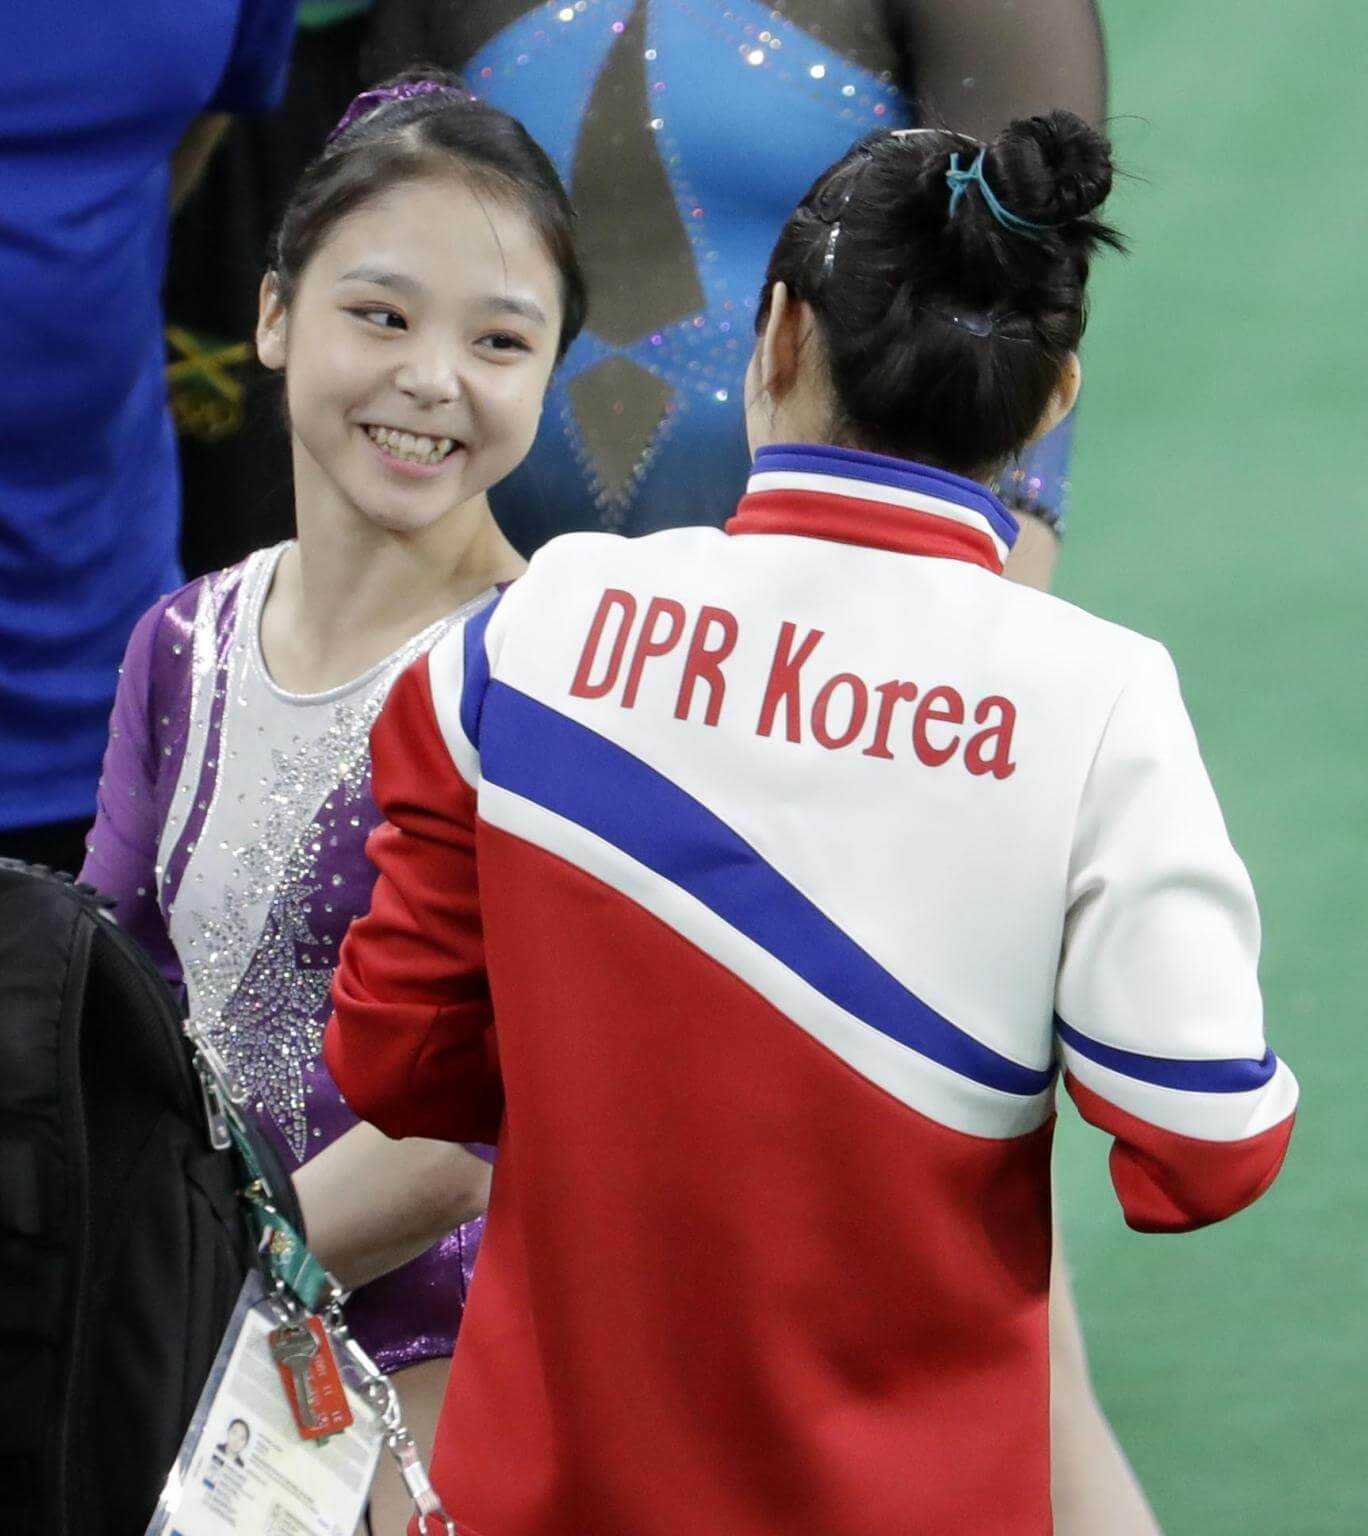 Gymnasts From North South Korea Clicking A Selfie Together Proves